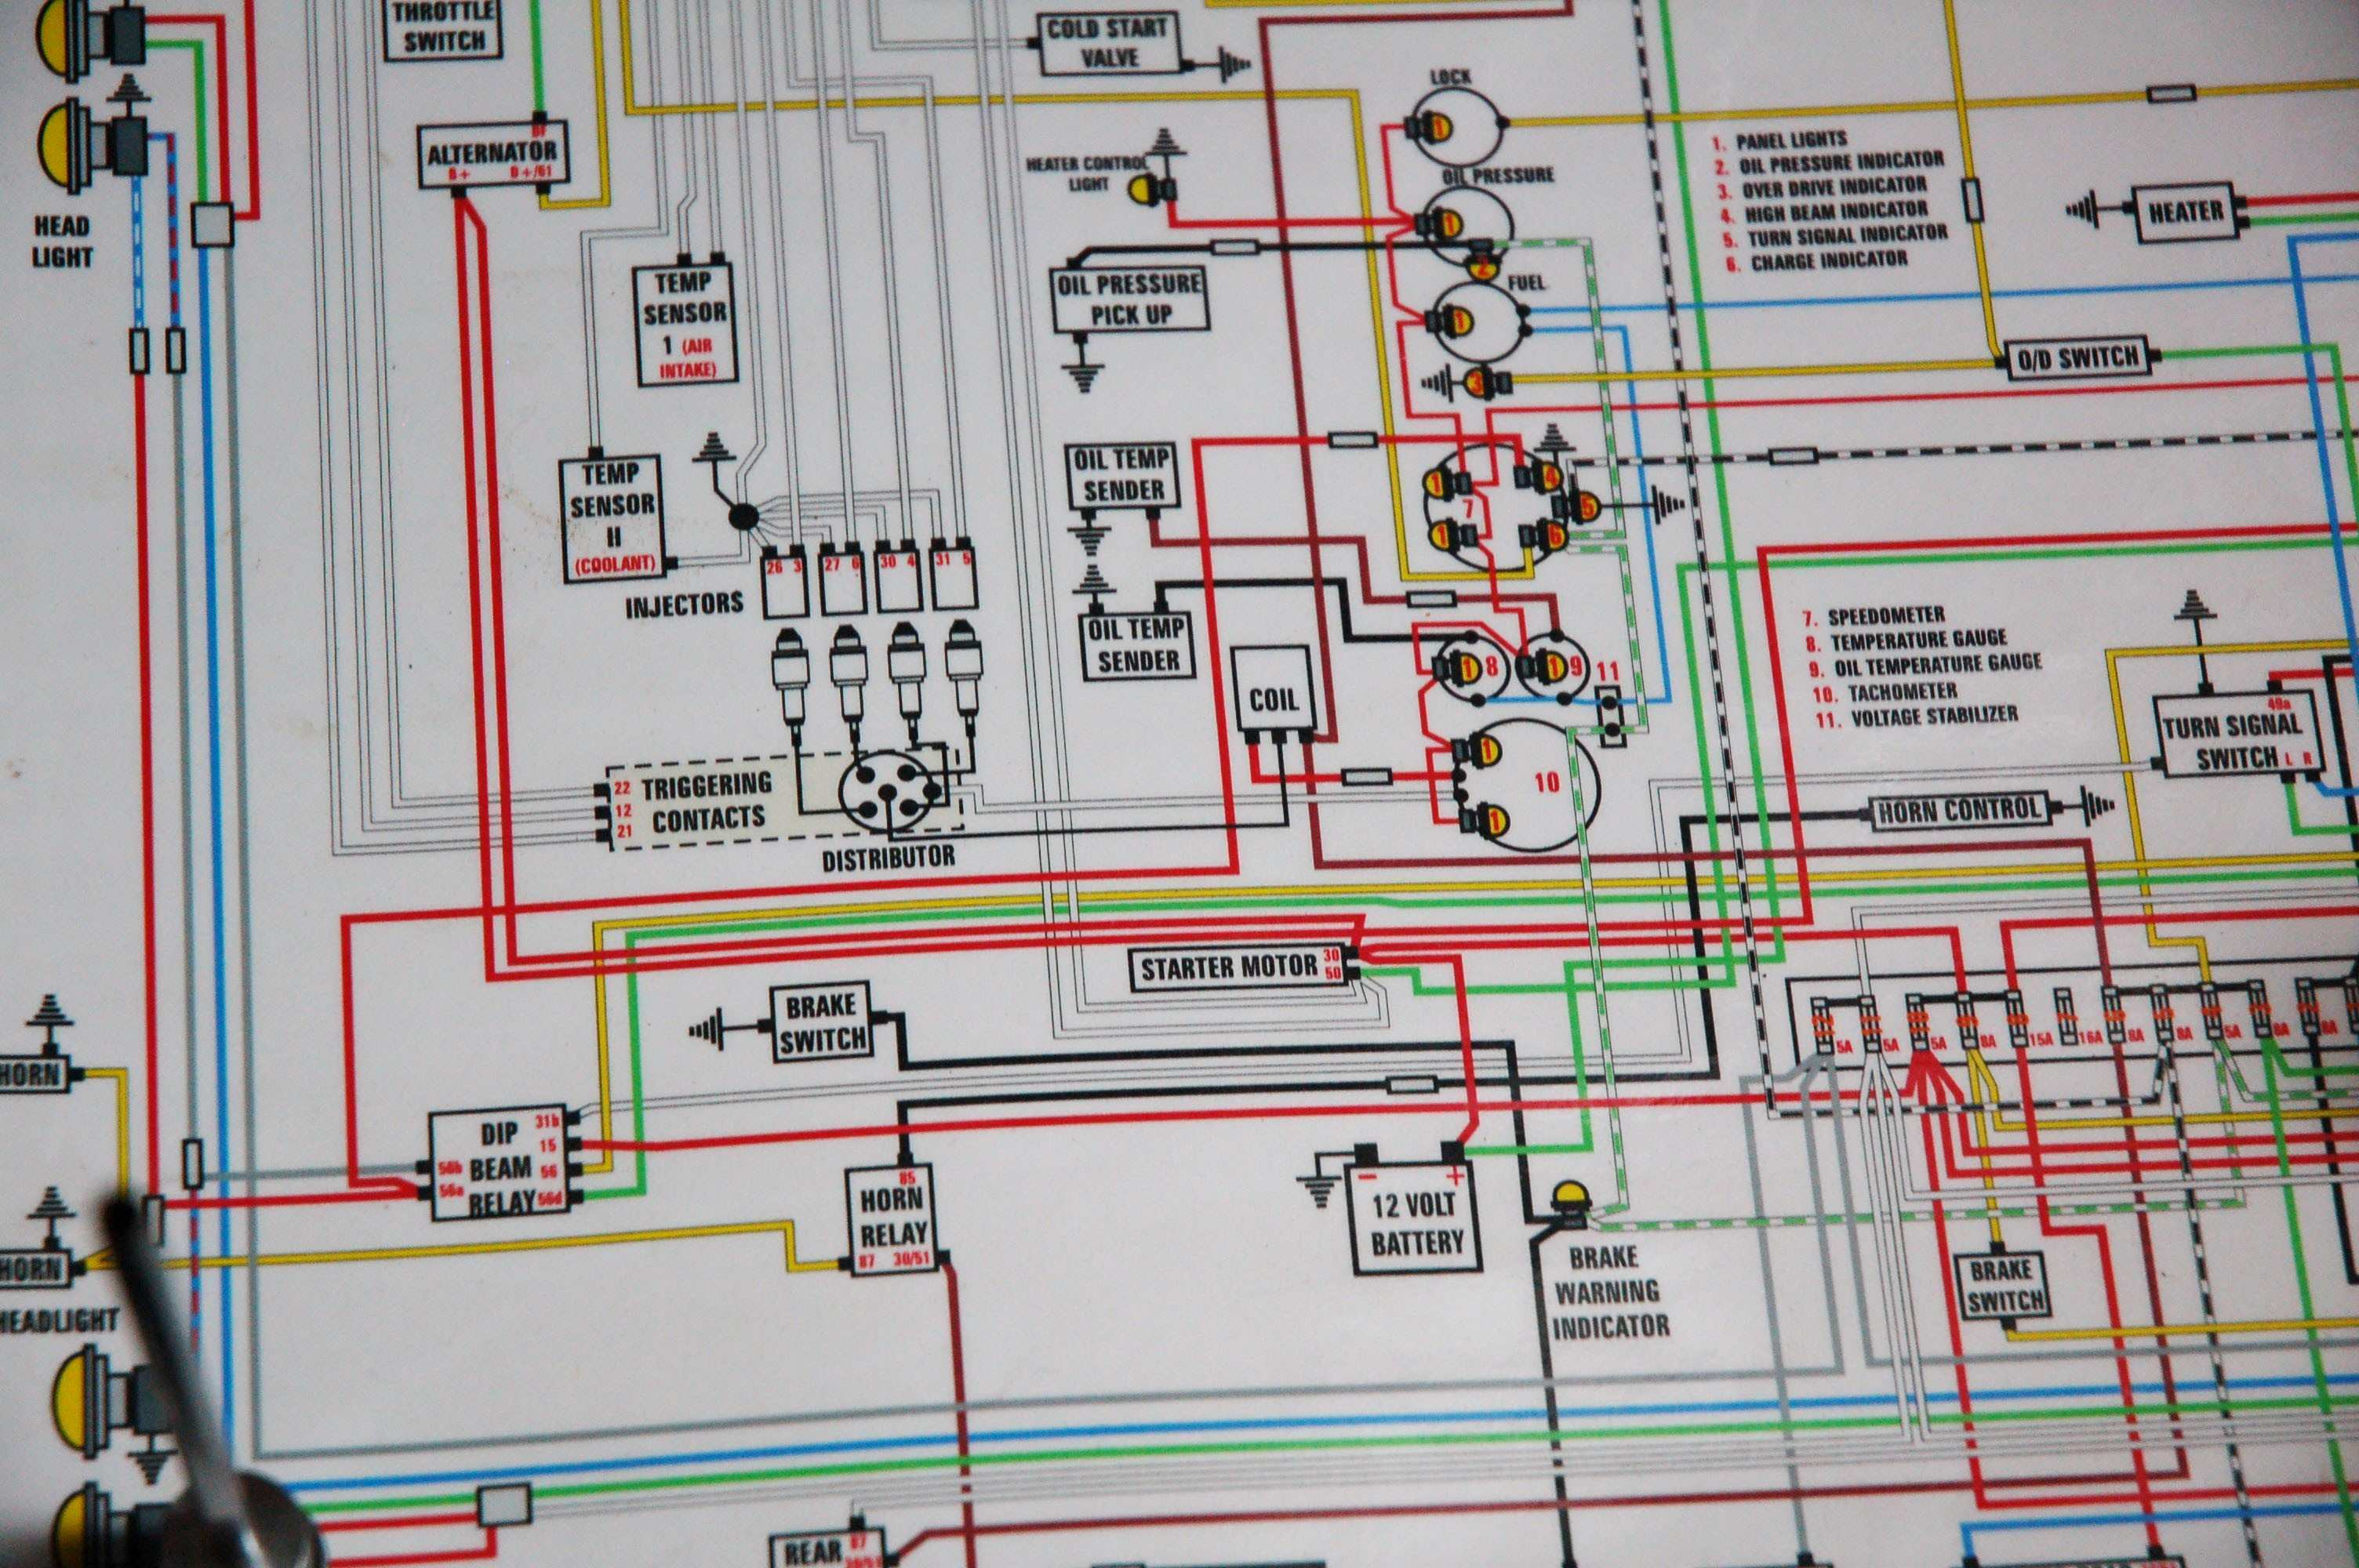 painless wiring switch panel diagram gallery painless universal wiring harness diagram painless 60510 wiring pinout diagram